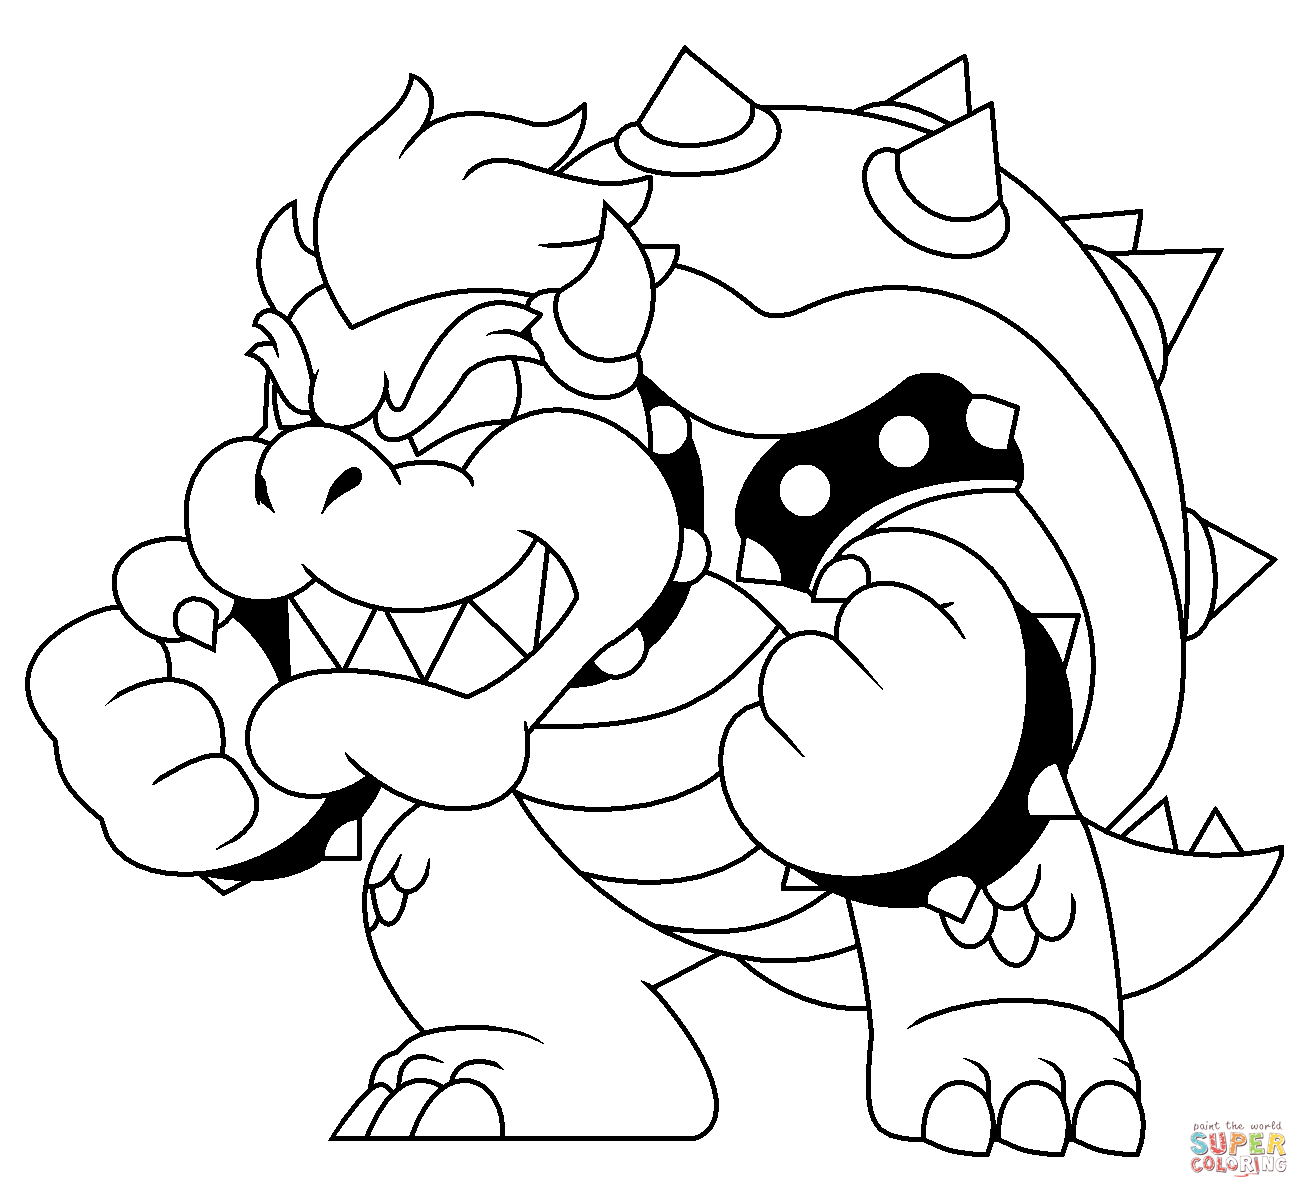 bowser to color bowser coloring pages free coloring home color bowser to